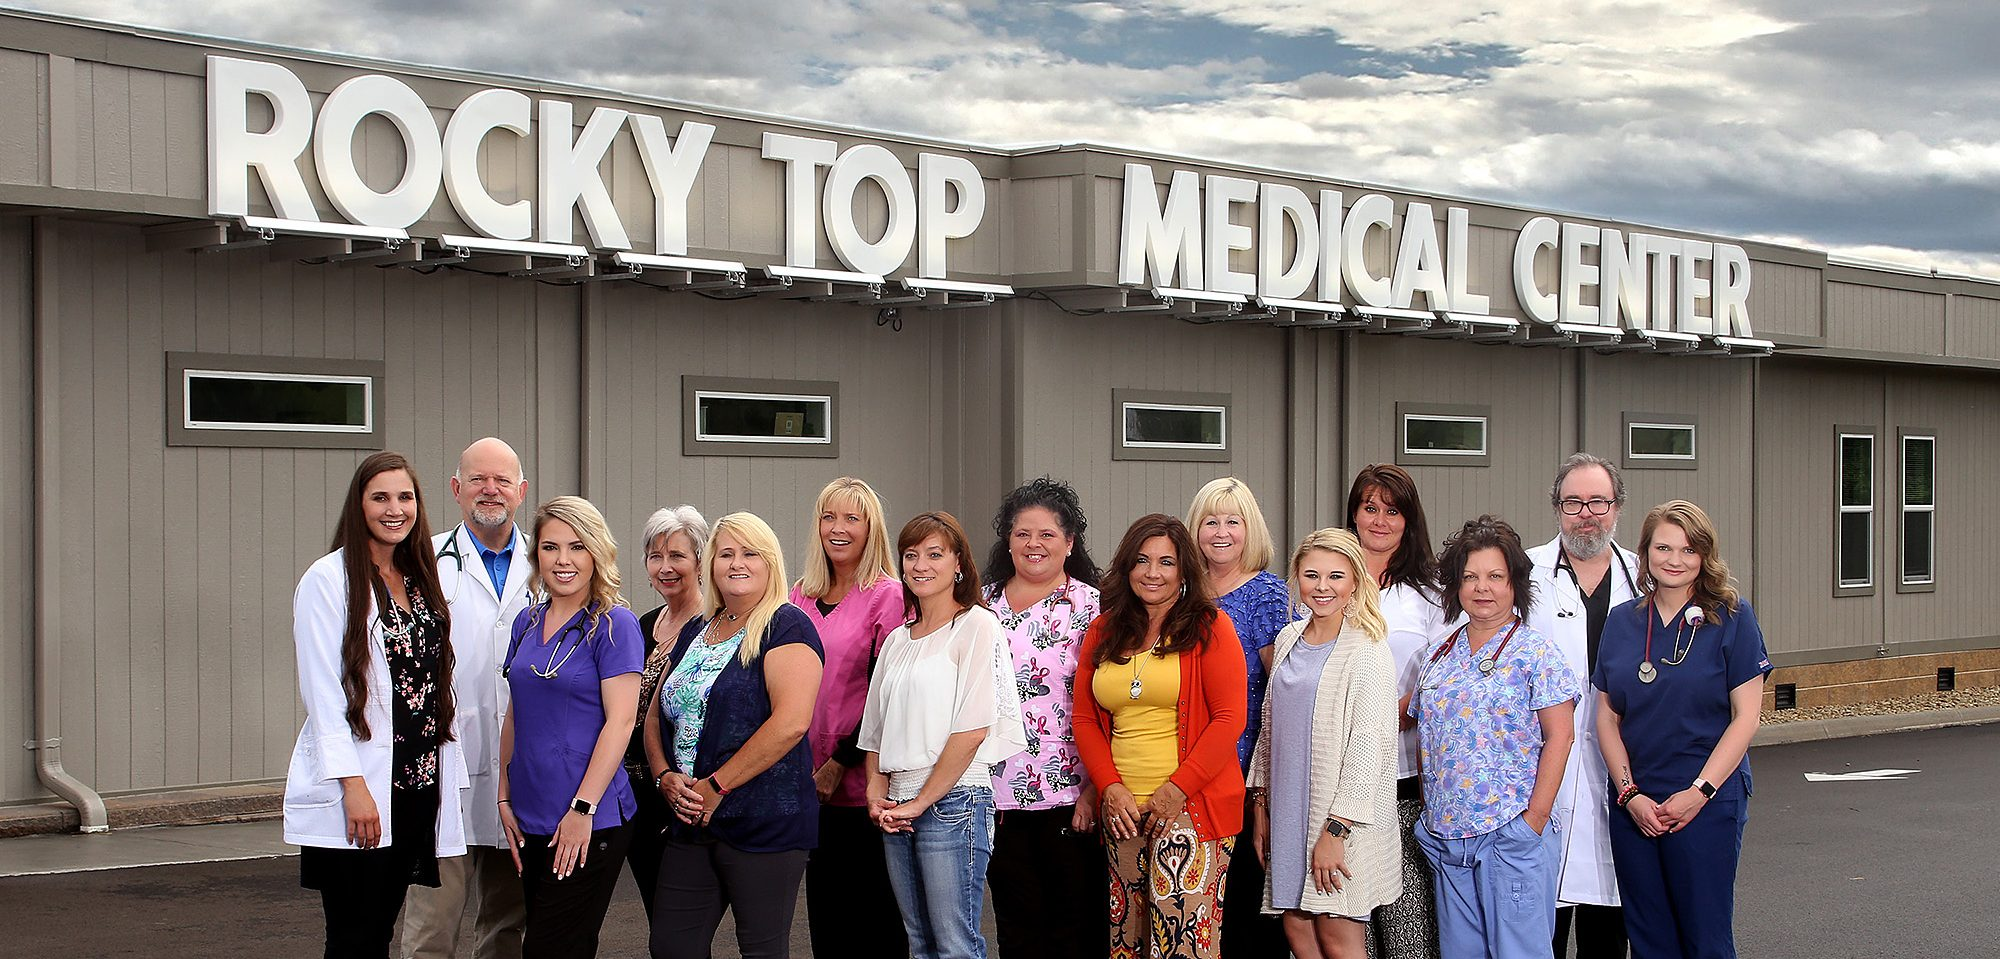 Rocky Top Medical Center